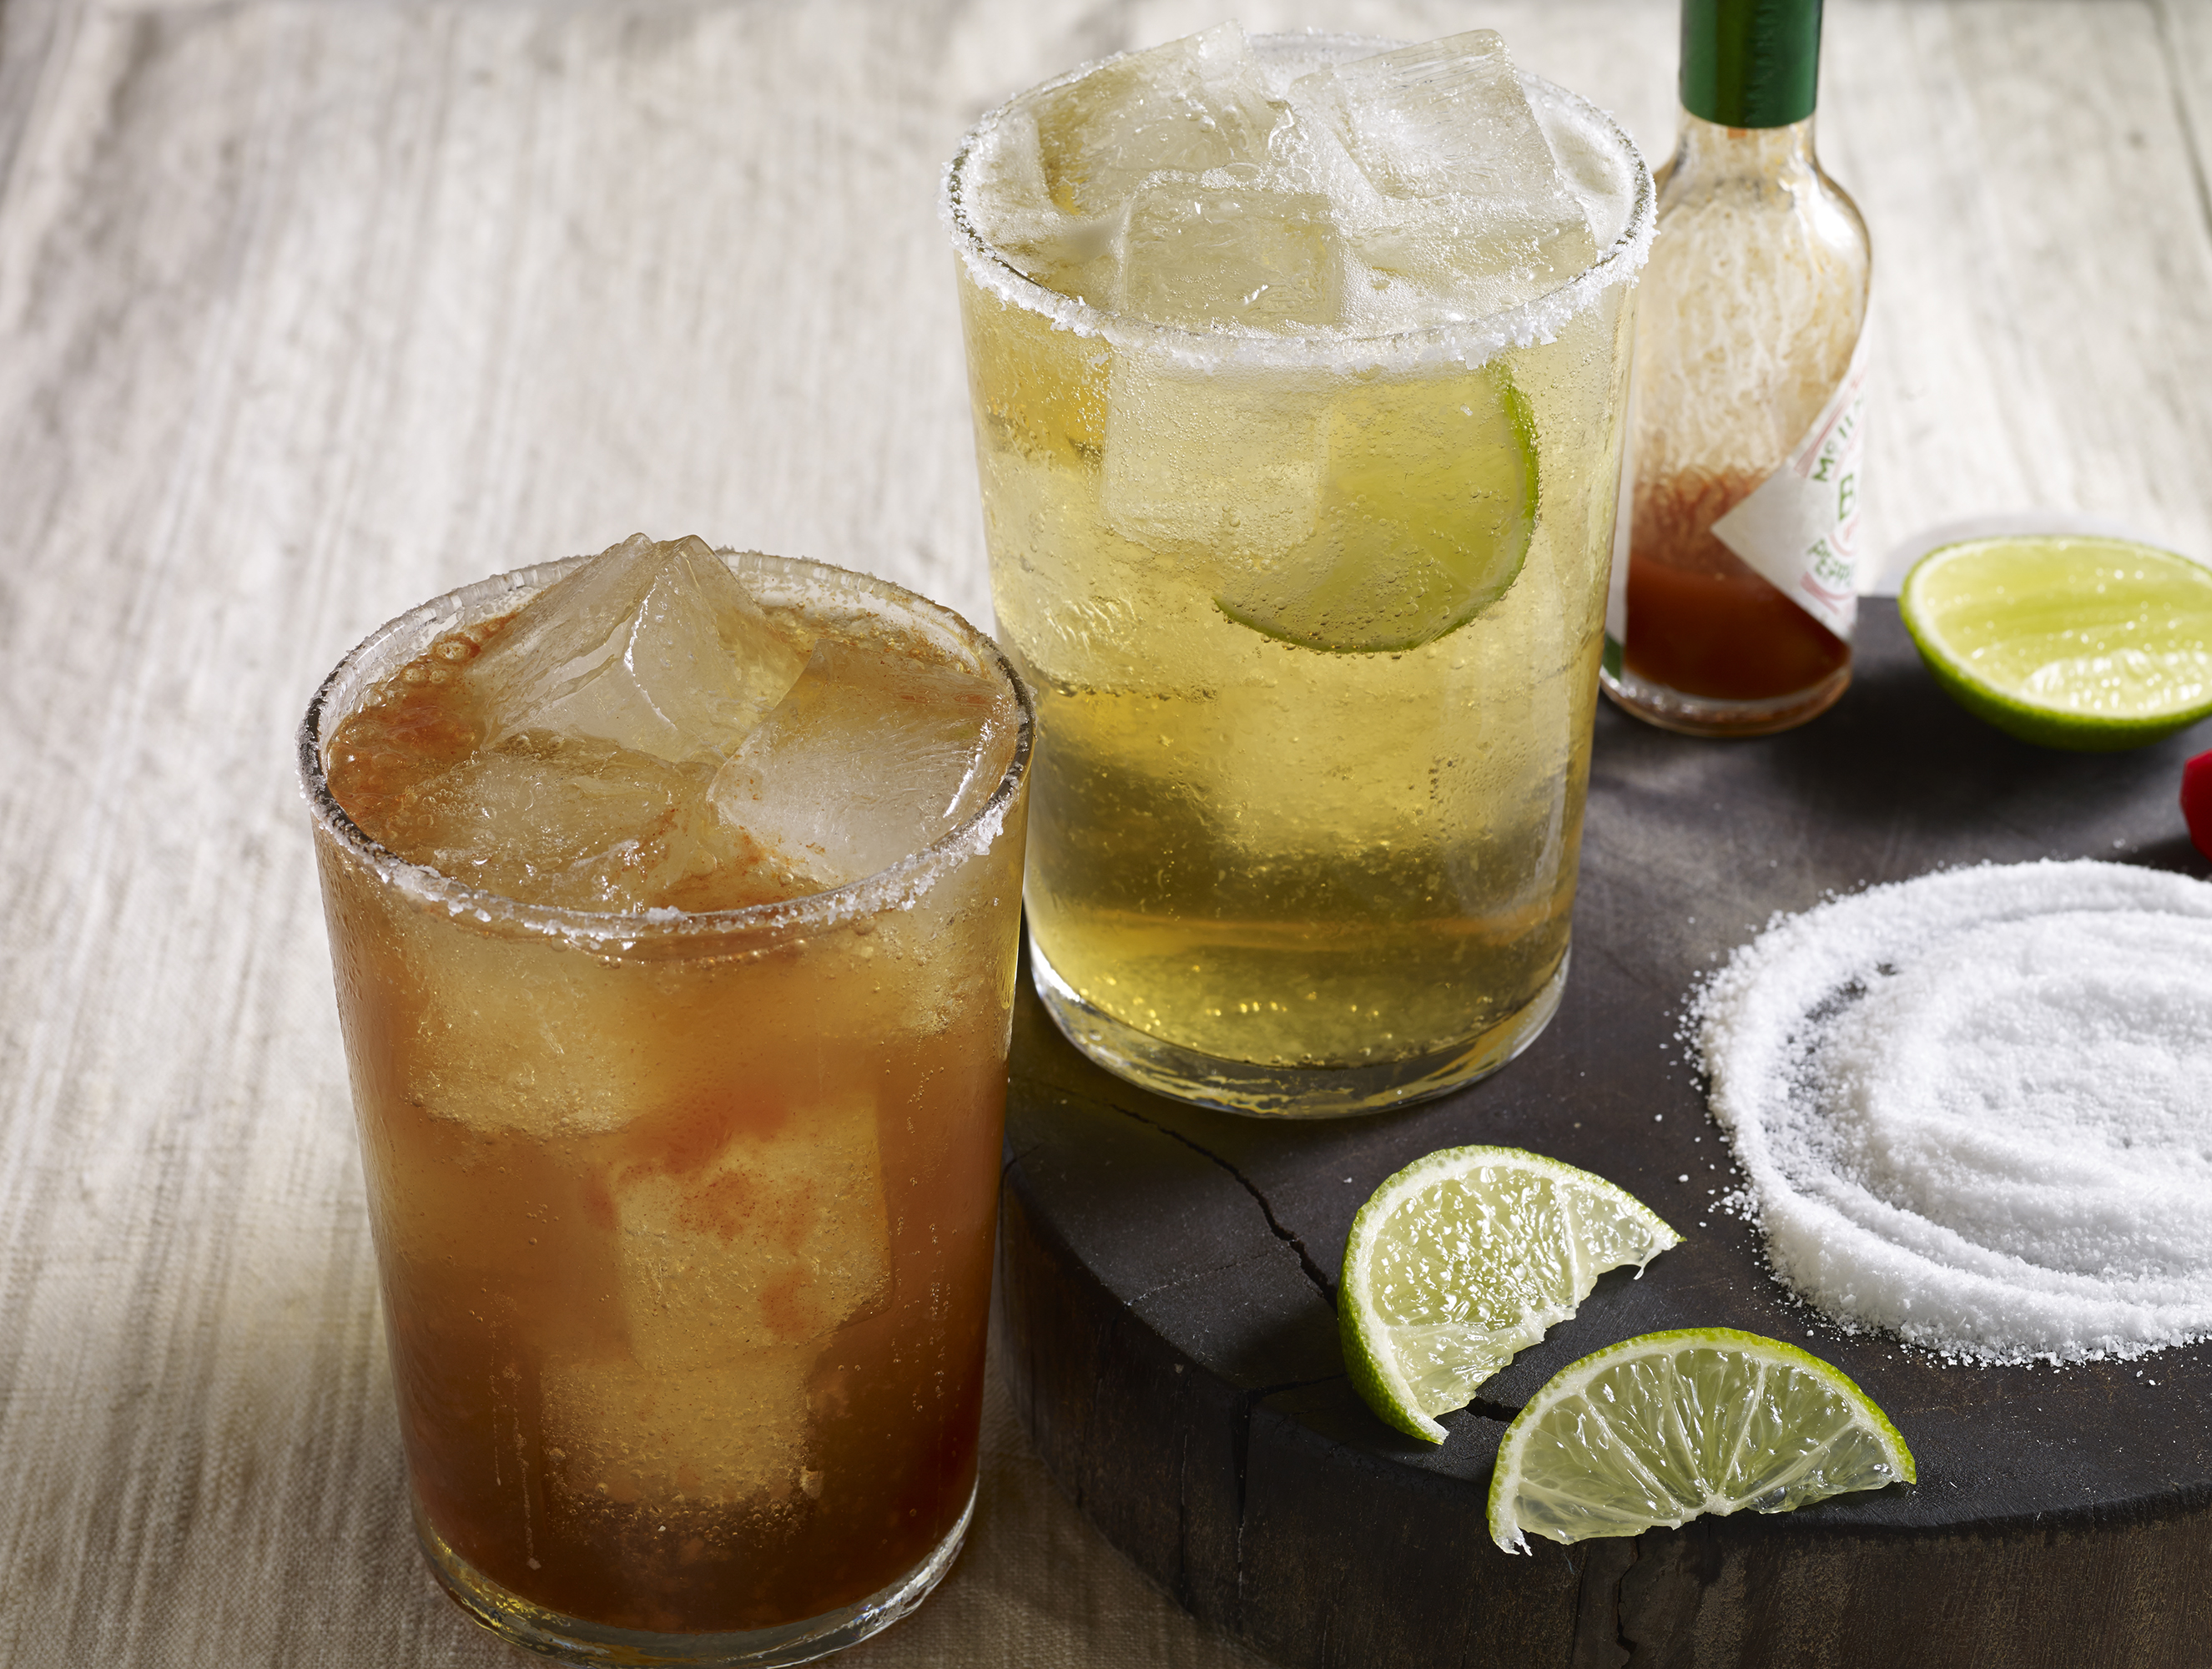 dressed up Mexican beer or michelada